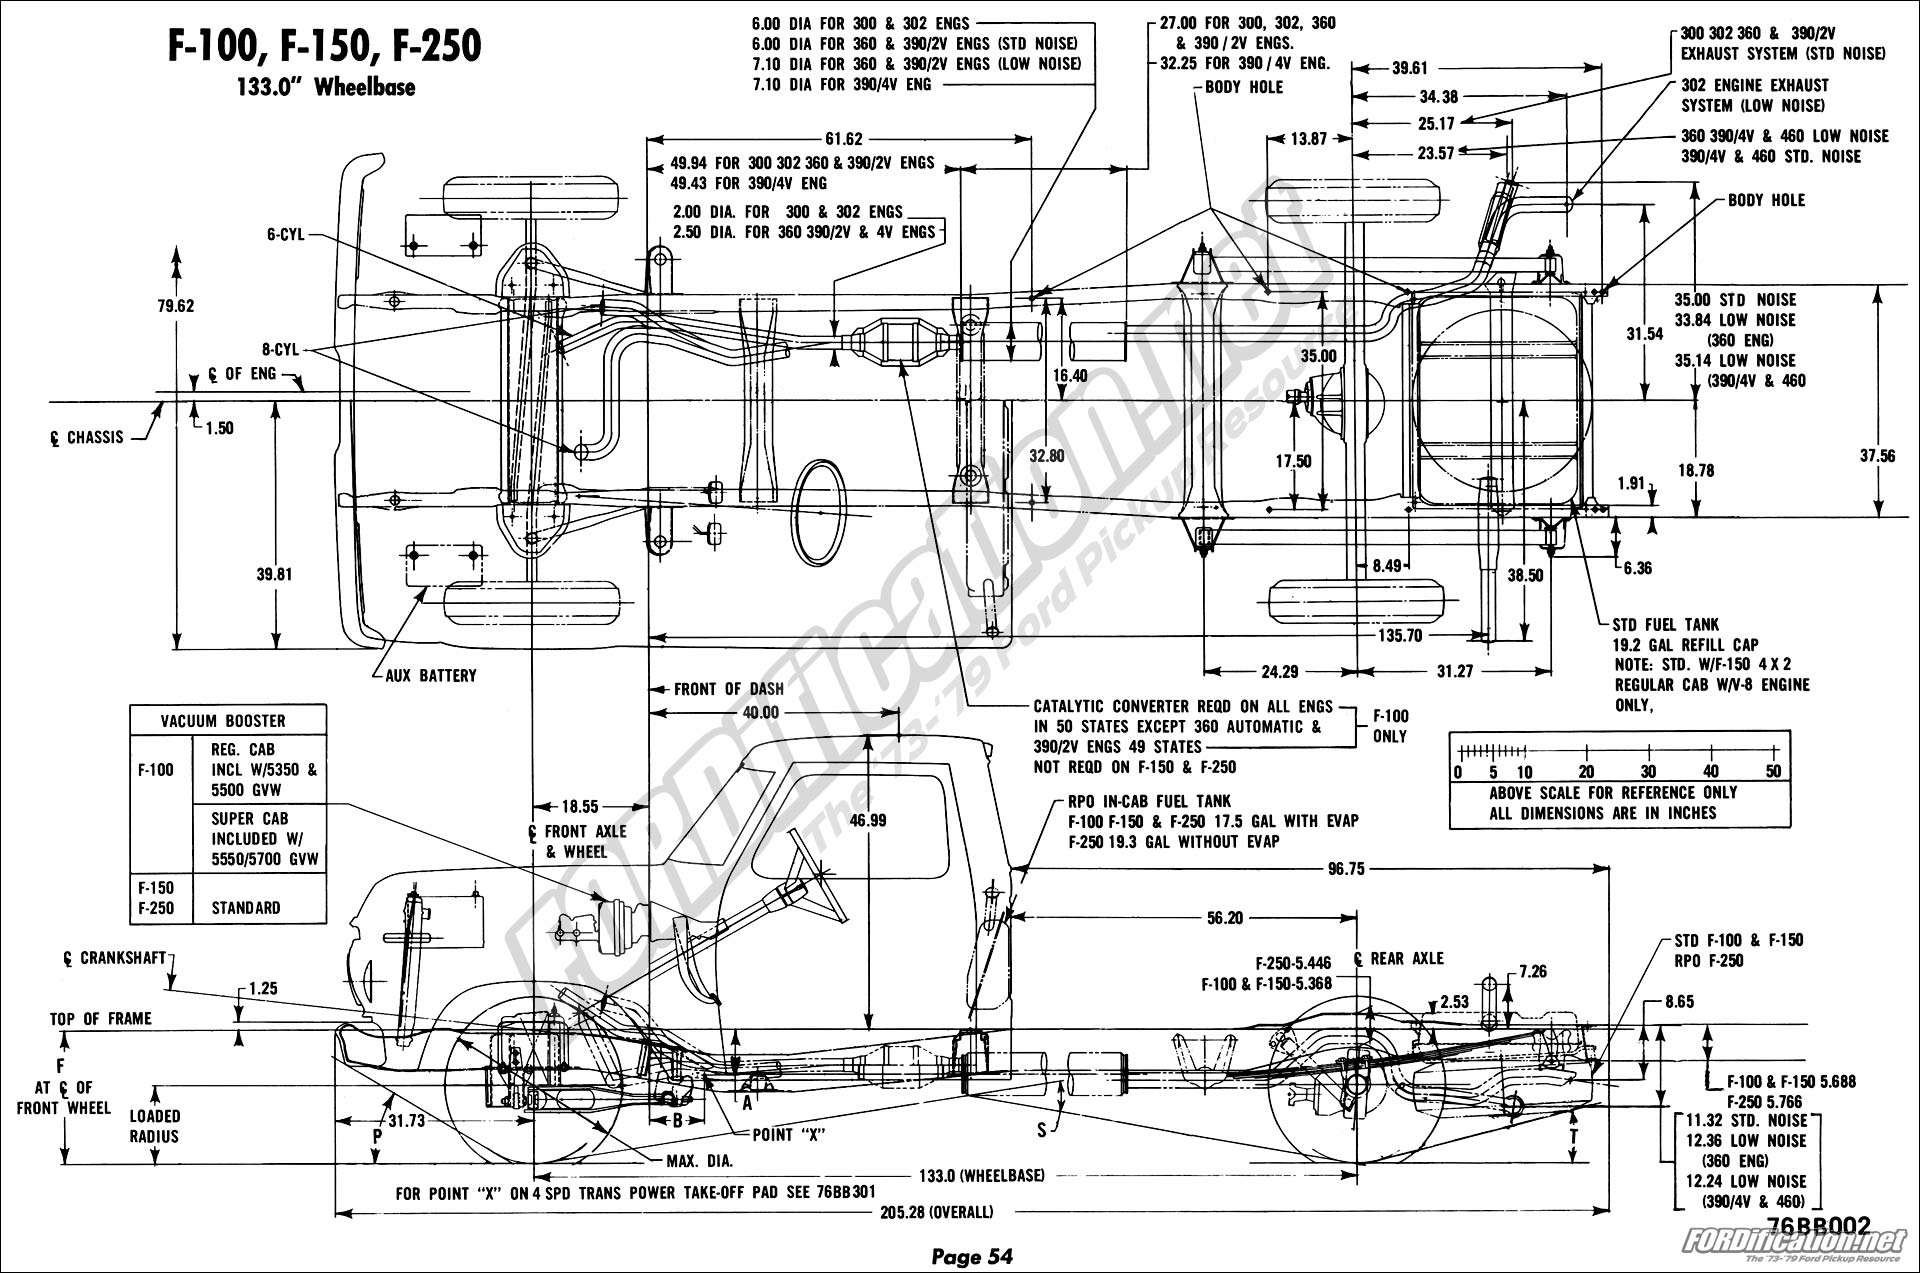 Motorcycle Wiring Diagrams moreover 371378585445 together with Bodybuilder76 likewise 496610 69 Mustang Needs Vacuum Diagram besides 2006 2008 Dodge 2500 5 9l And 6 7l Diesel Serpentine Belt Diagram. on 1996 ford 3 8 engine diagram